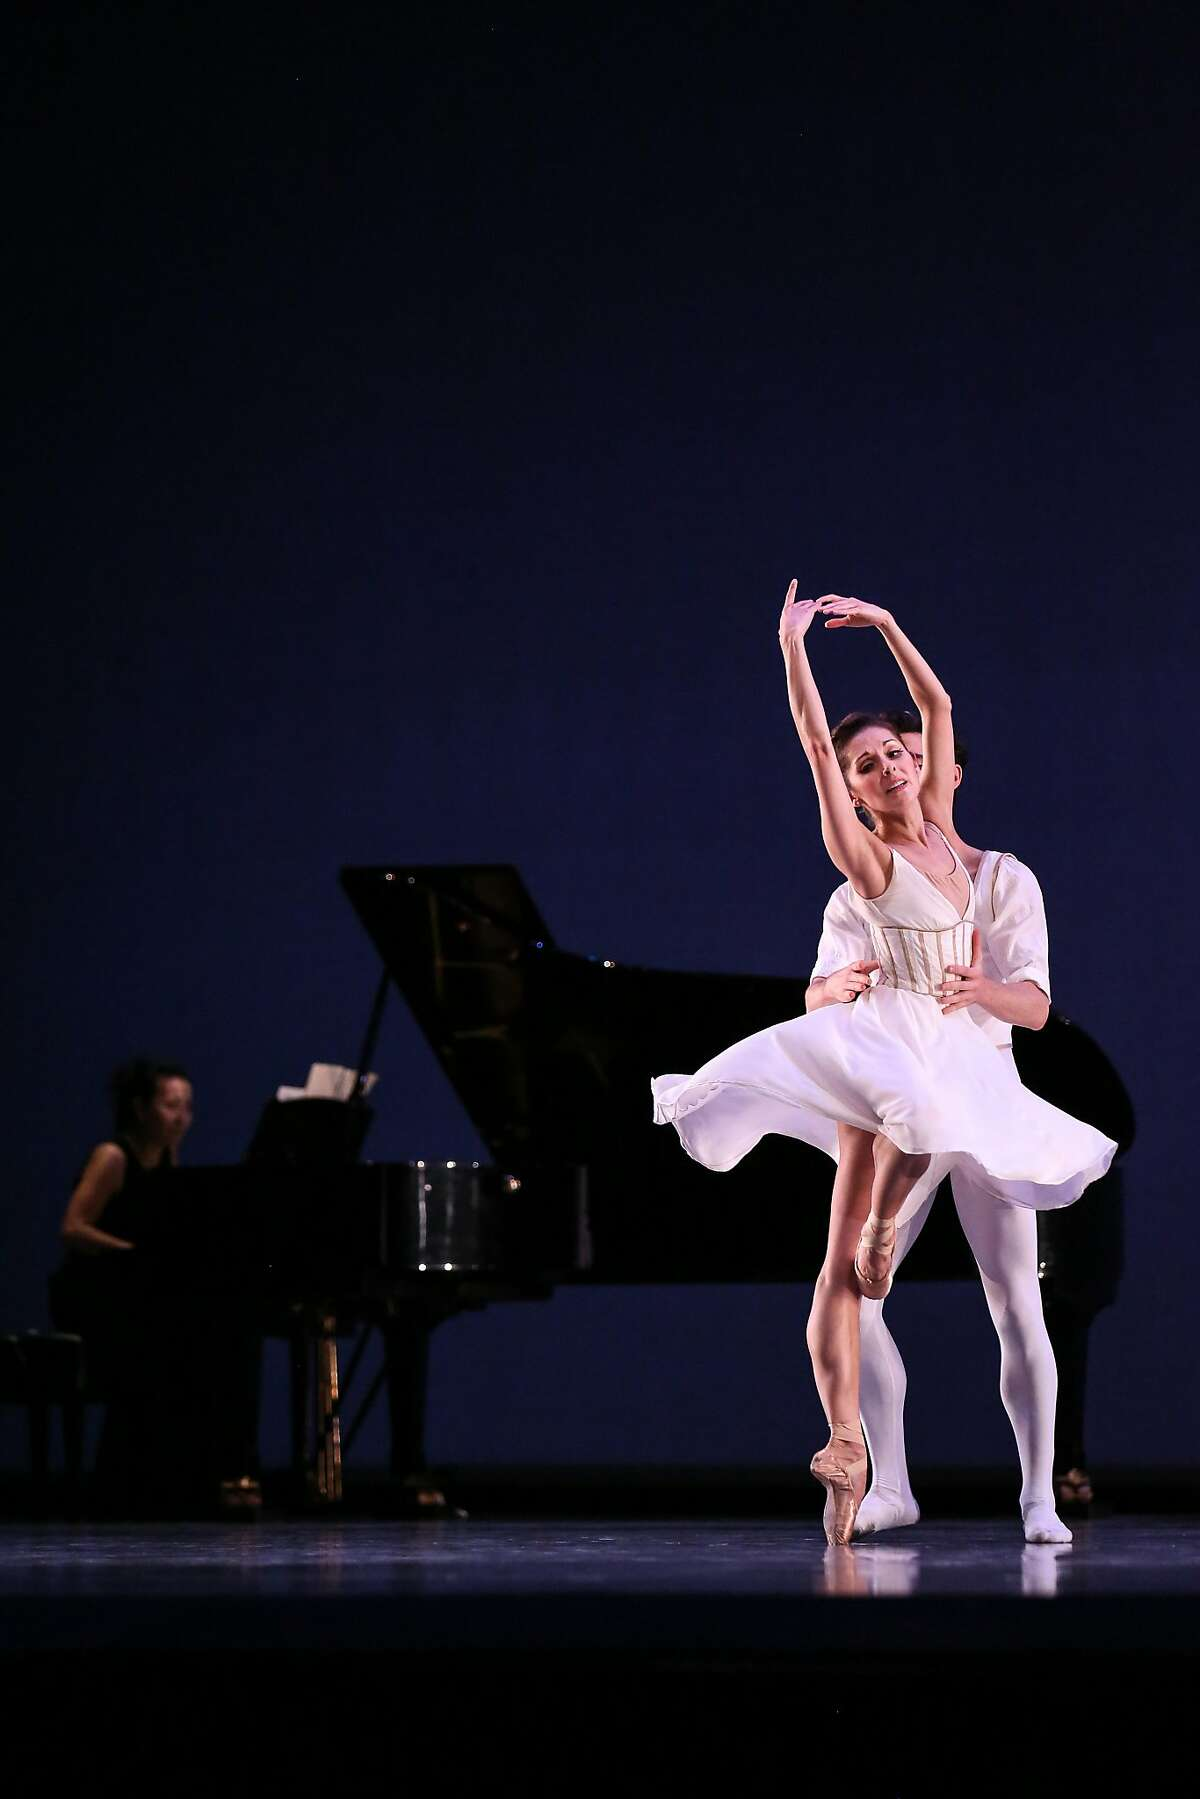 SF Ballet's Lauren Strongin and Joseph Walsh perform in a dress rehearsal of Seven Sonatas on Thursday, January 26, 2017 in San Francisco, Calif.